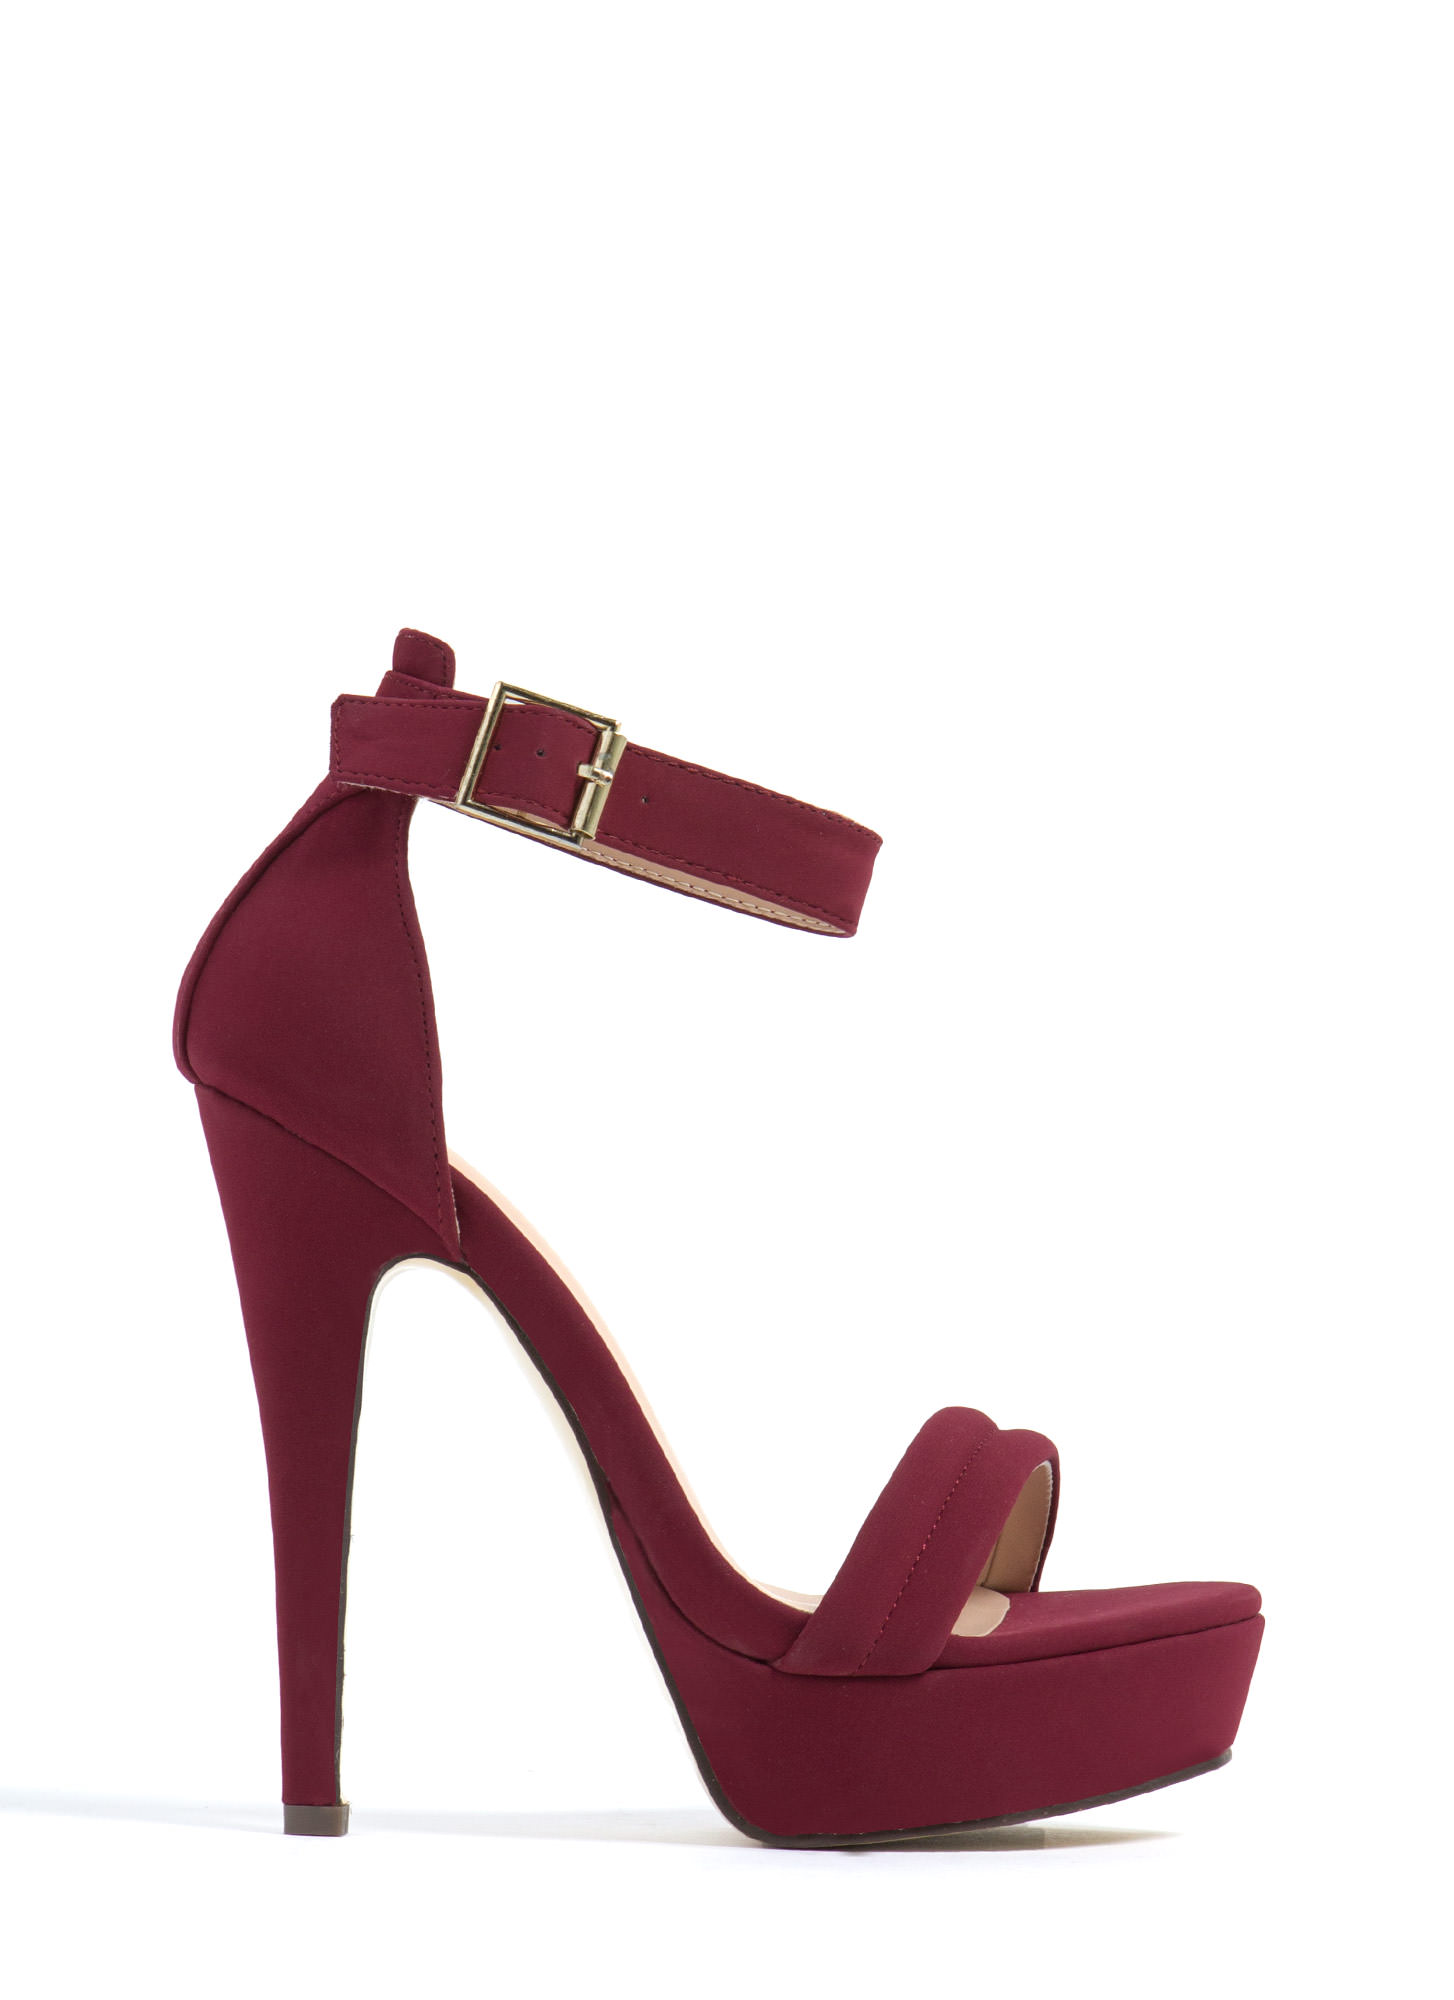 Barely There Platform Heels WINE